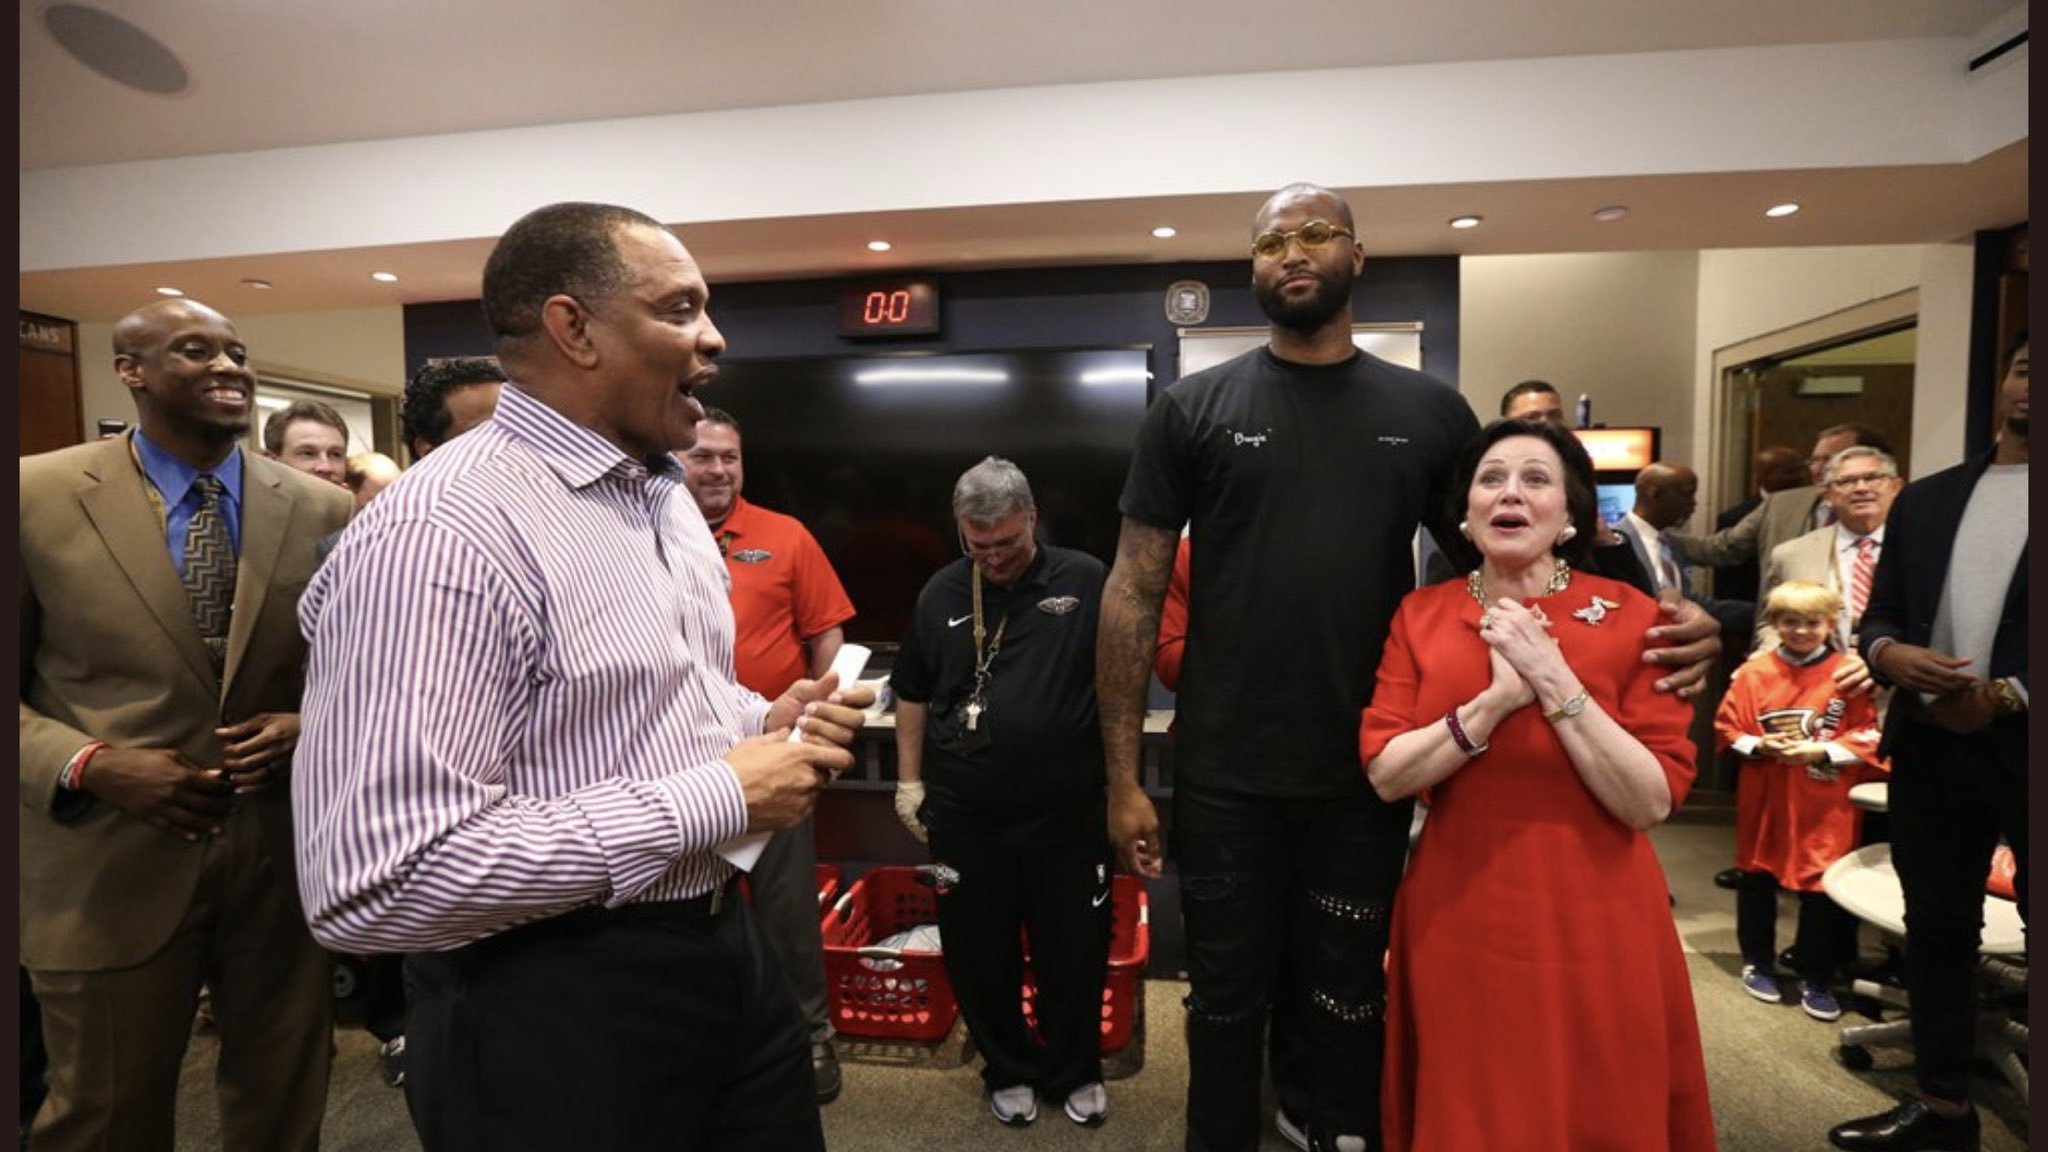 Photos from the #Pelicans locker room after the sweep! https://t.co/2IFxCaXenk #doitBIGGER https://t.co/9EIOrWFFTn